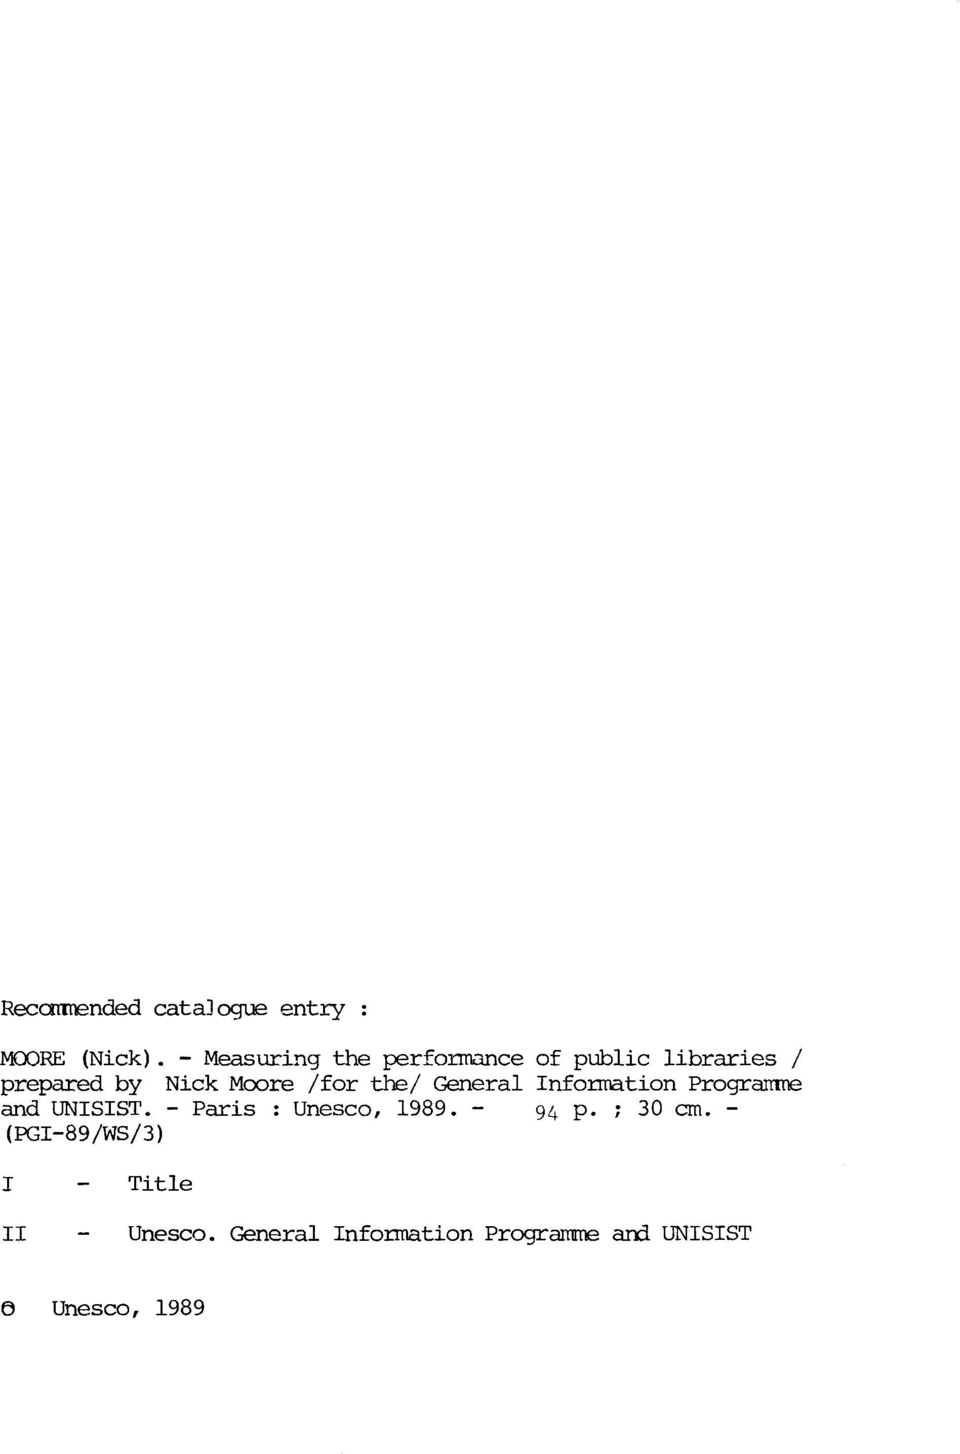 the/ General Information Programne and UNISIST. - Paris : Unesco, 1989.